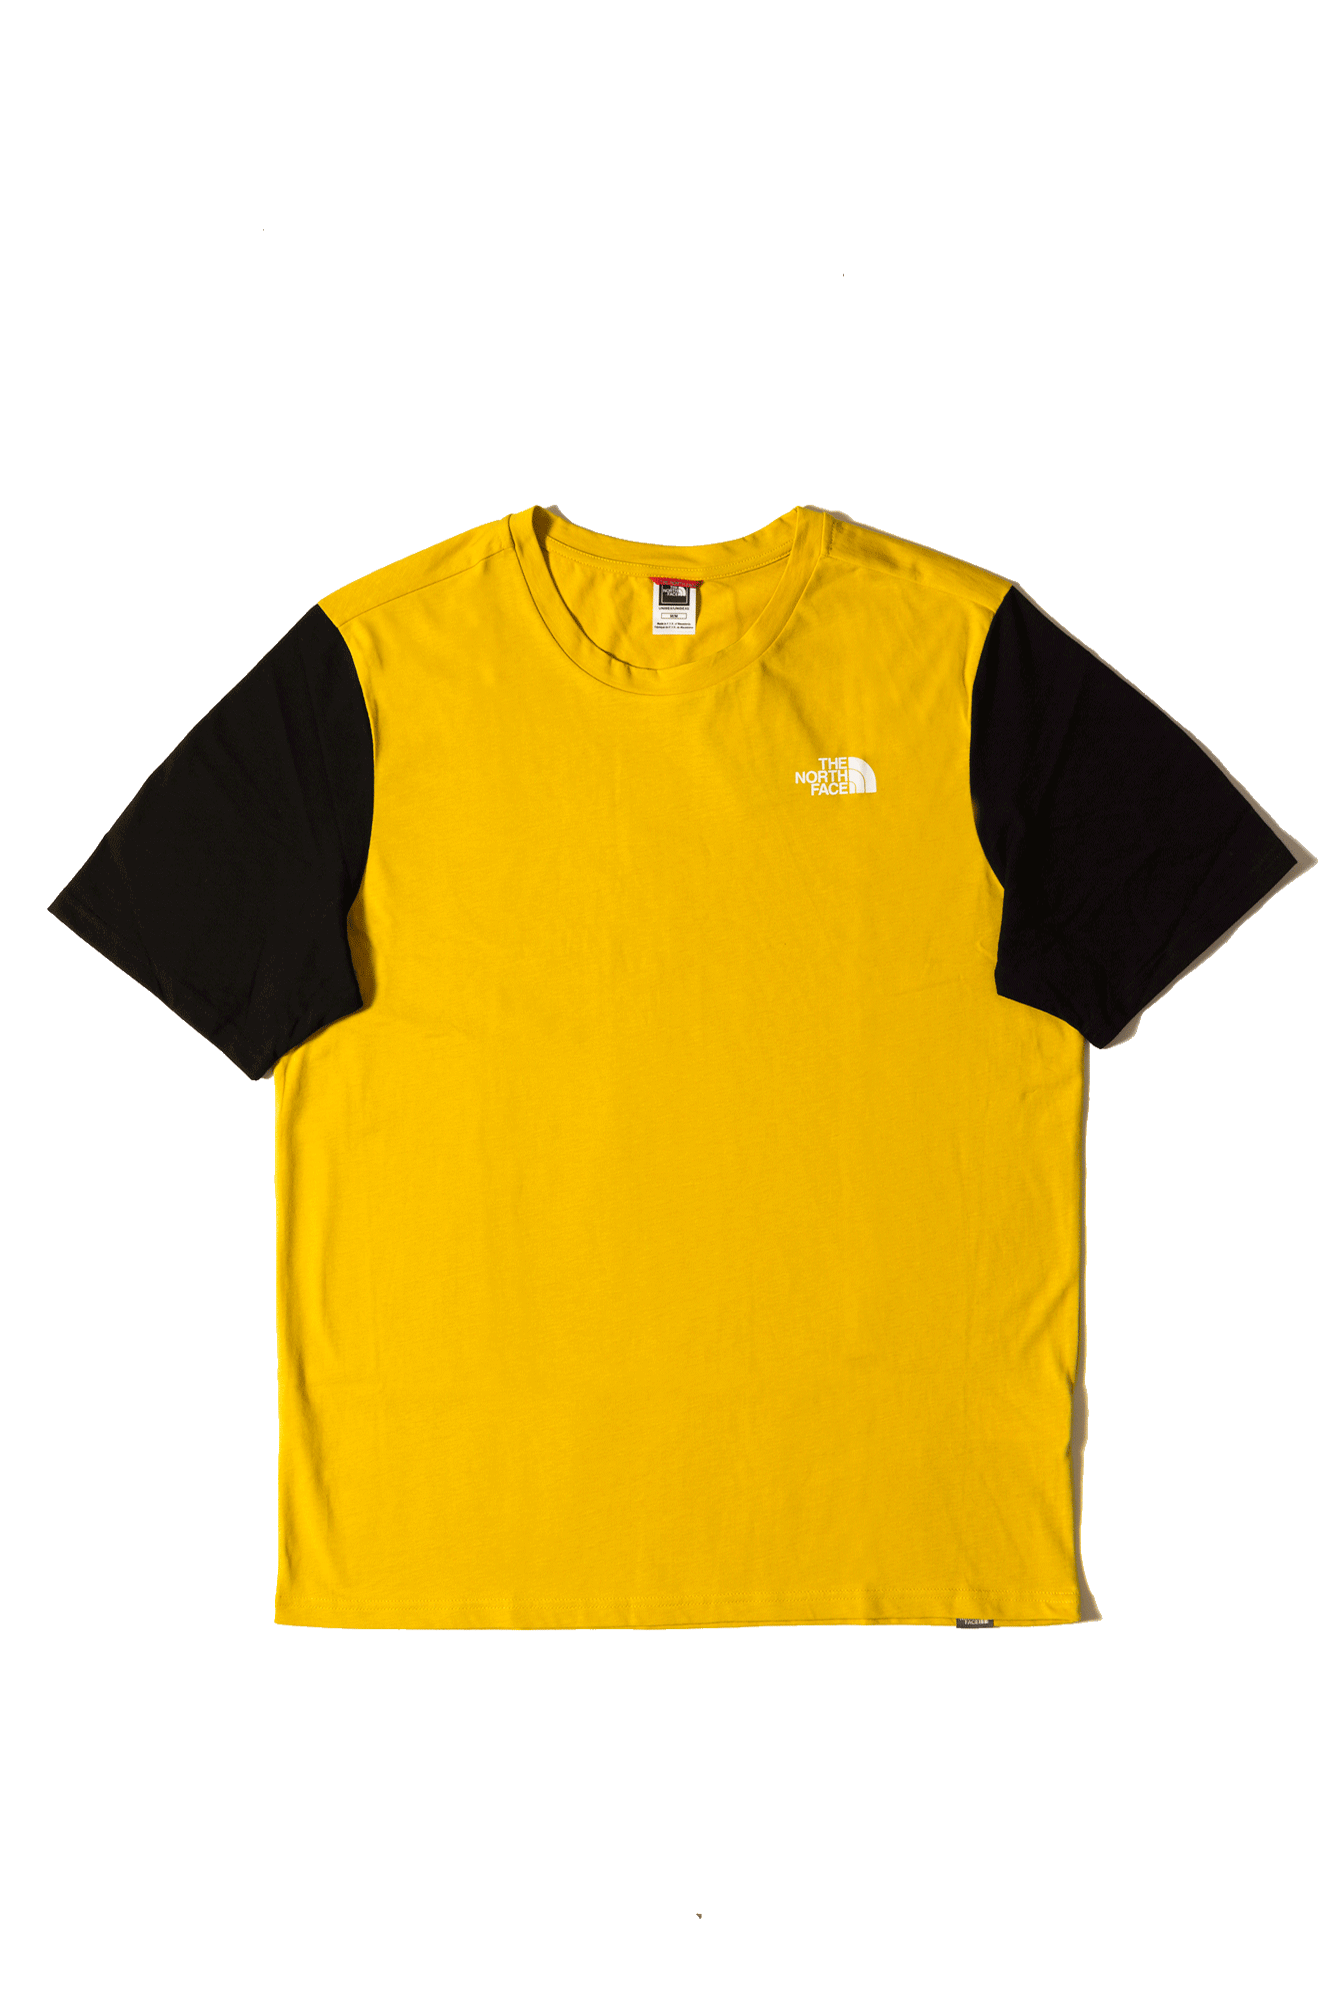 U RAGE S/S GRAPHIC T Yellow